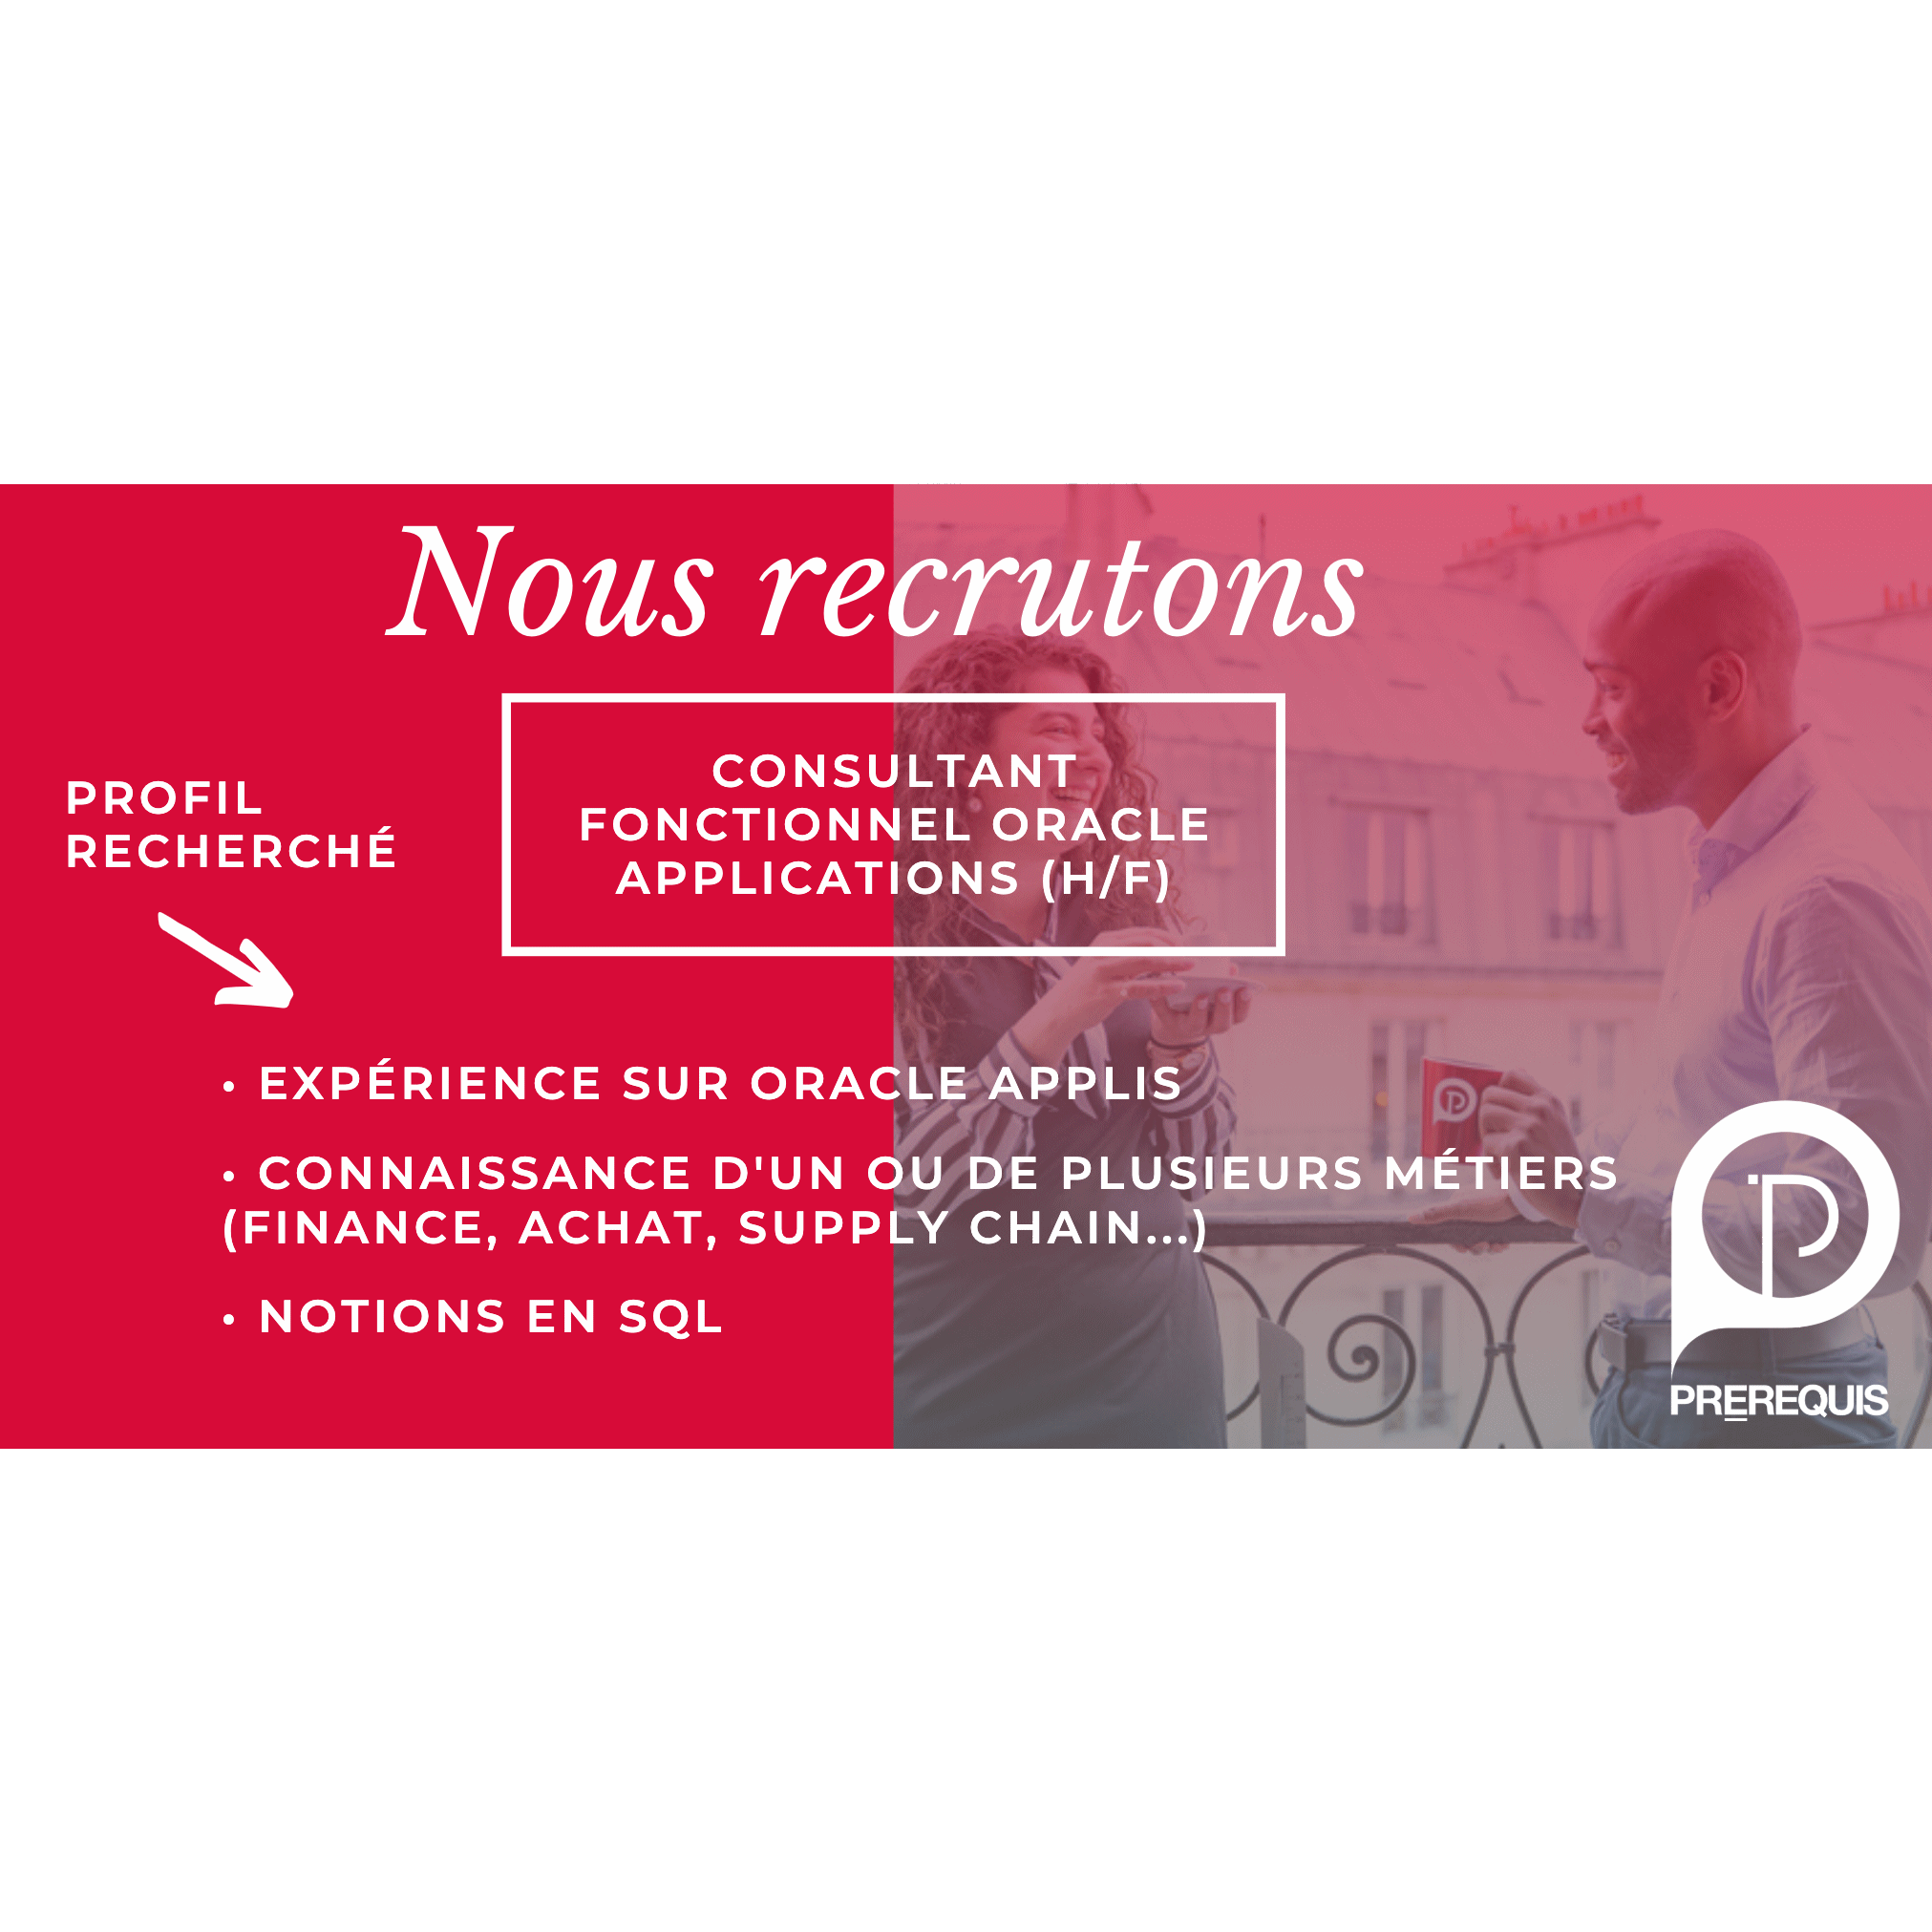 CONSULTANT FONCTIONNEL ORACLE APPLICATIONS (H/F)